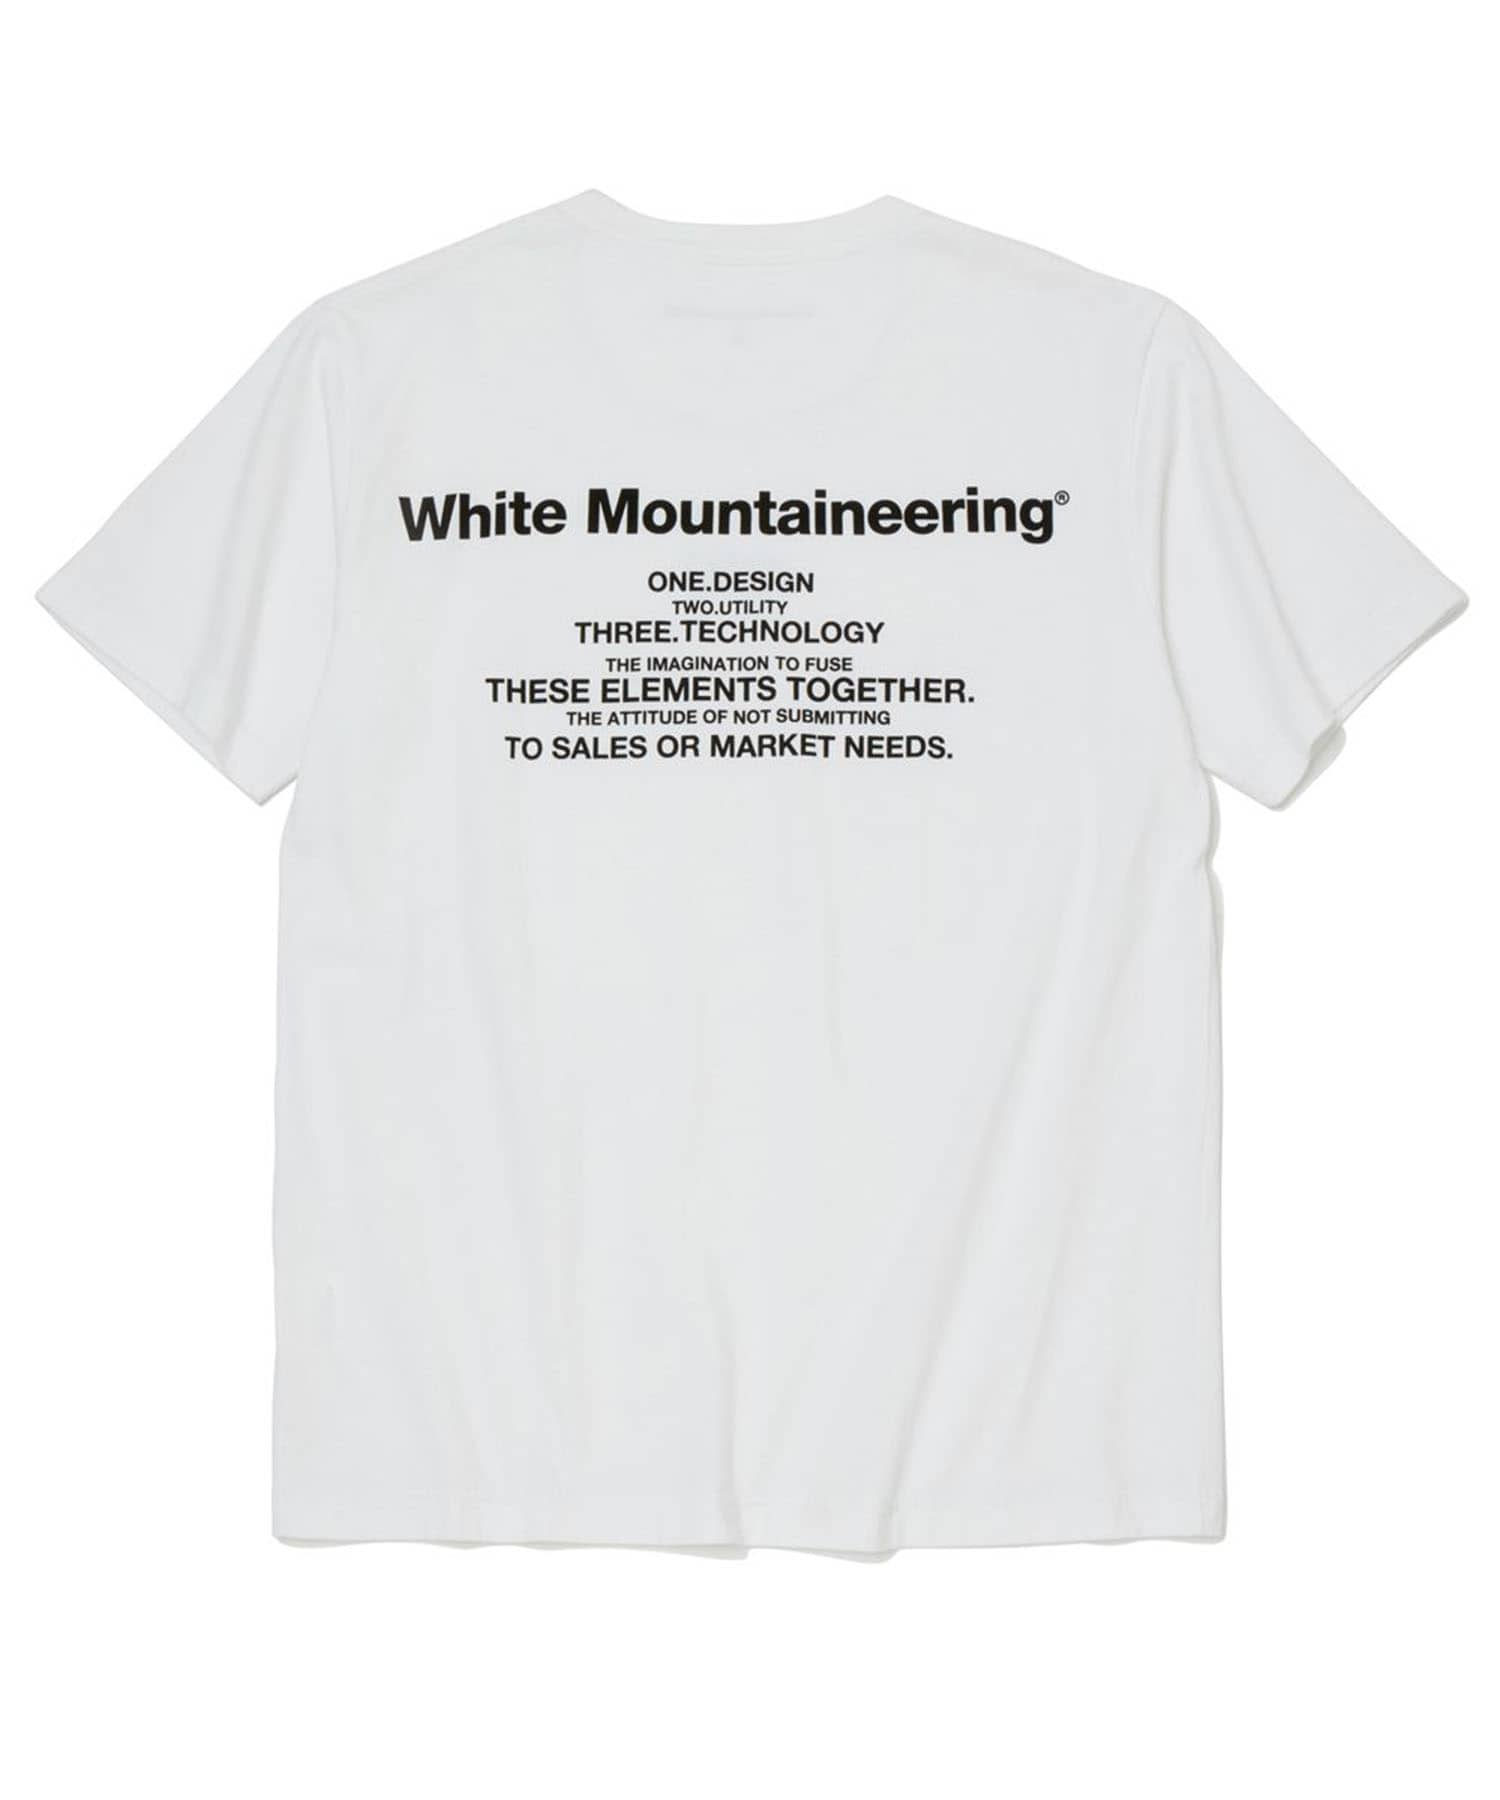 PRINTED T-SHIRT WM White Mountaineering